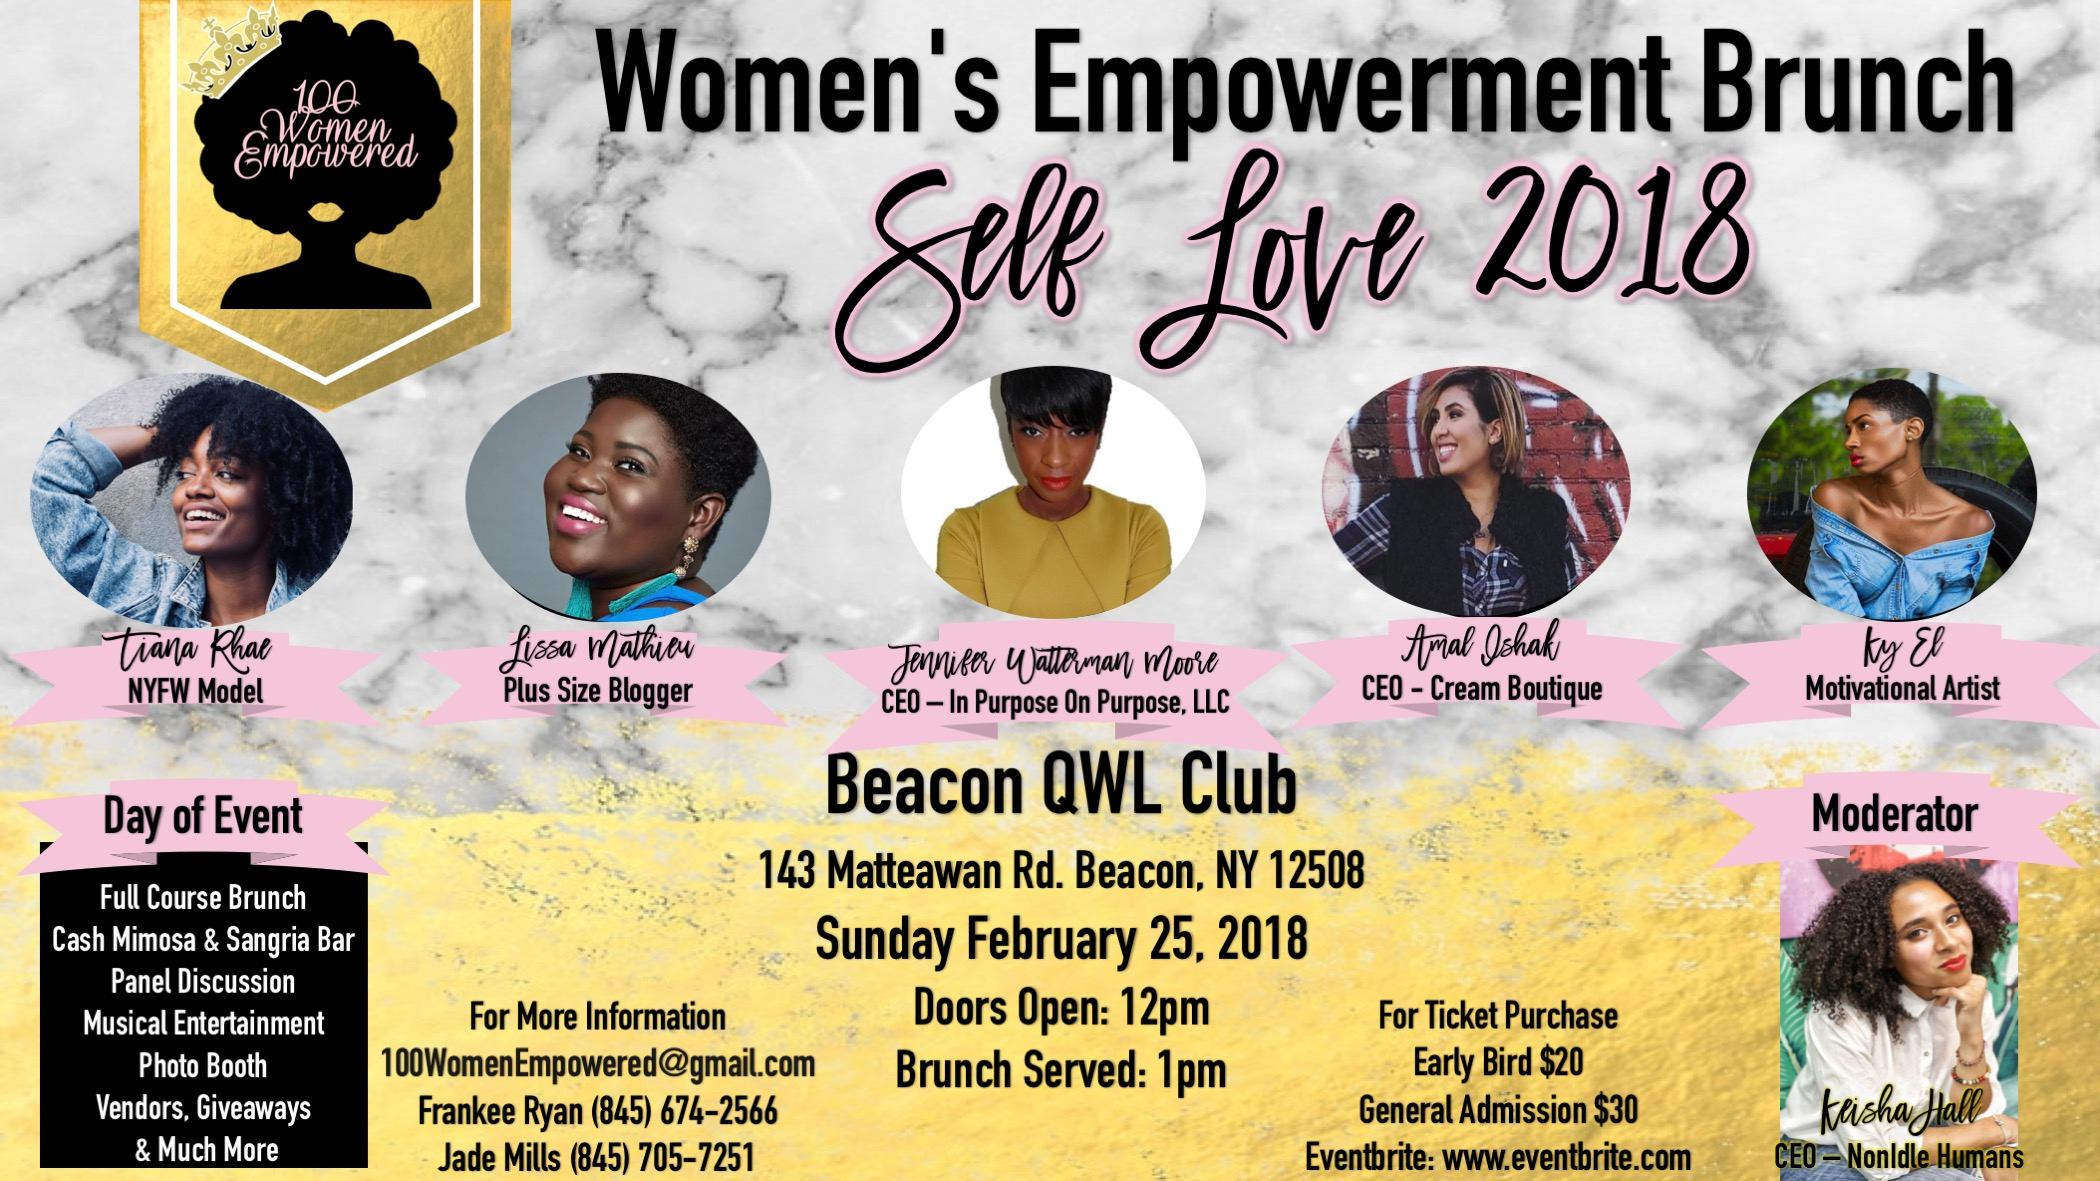 Womens Empowerment Brunch - Self Love